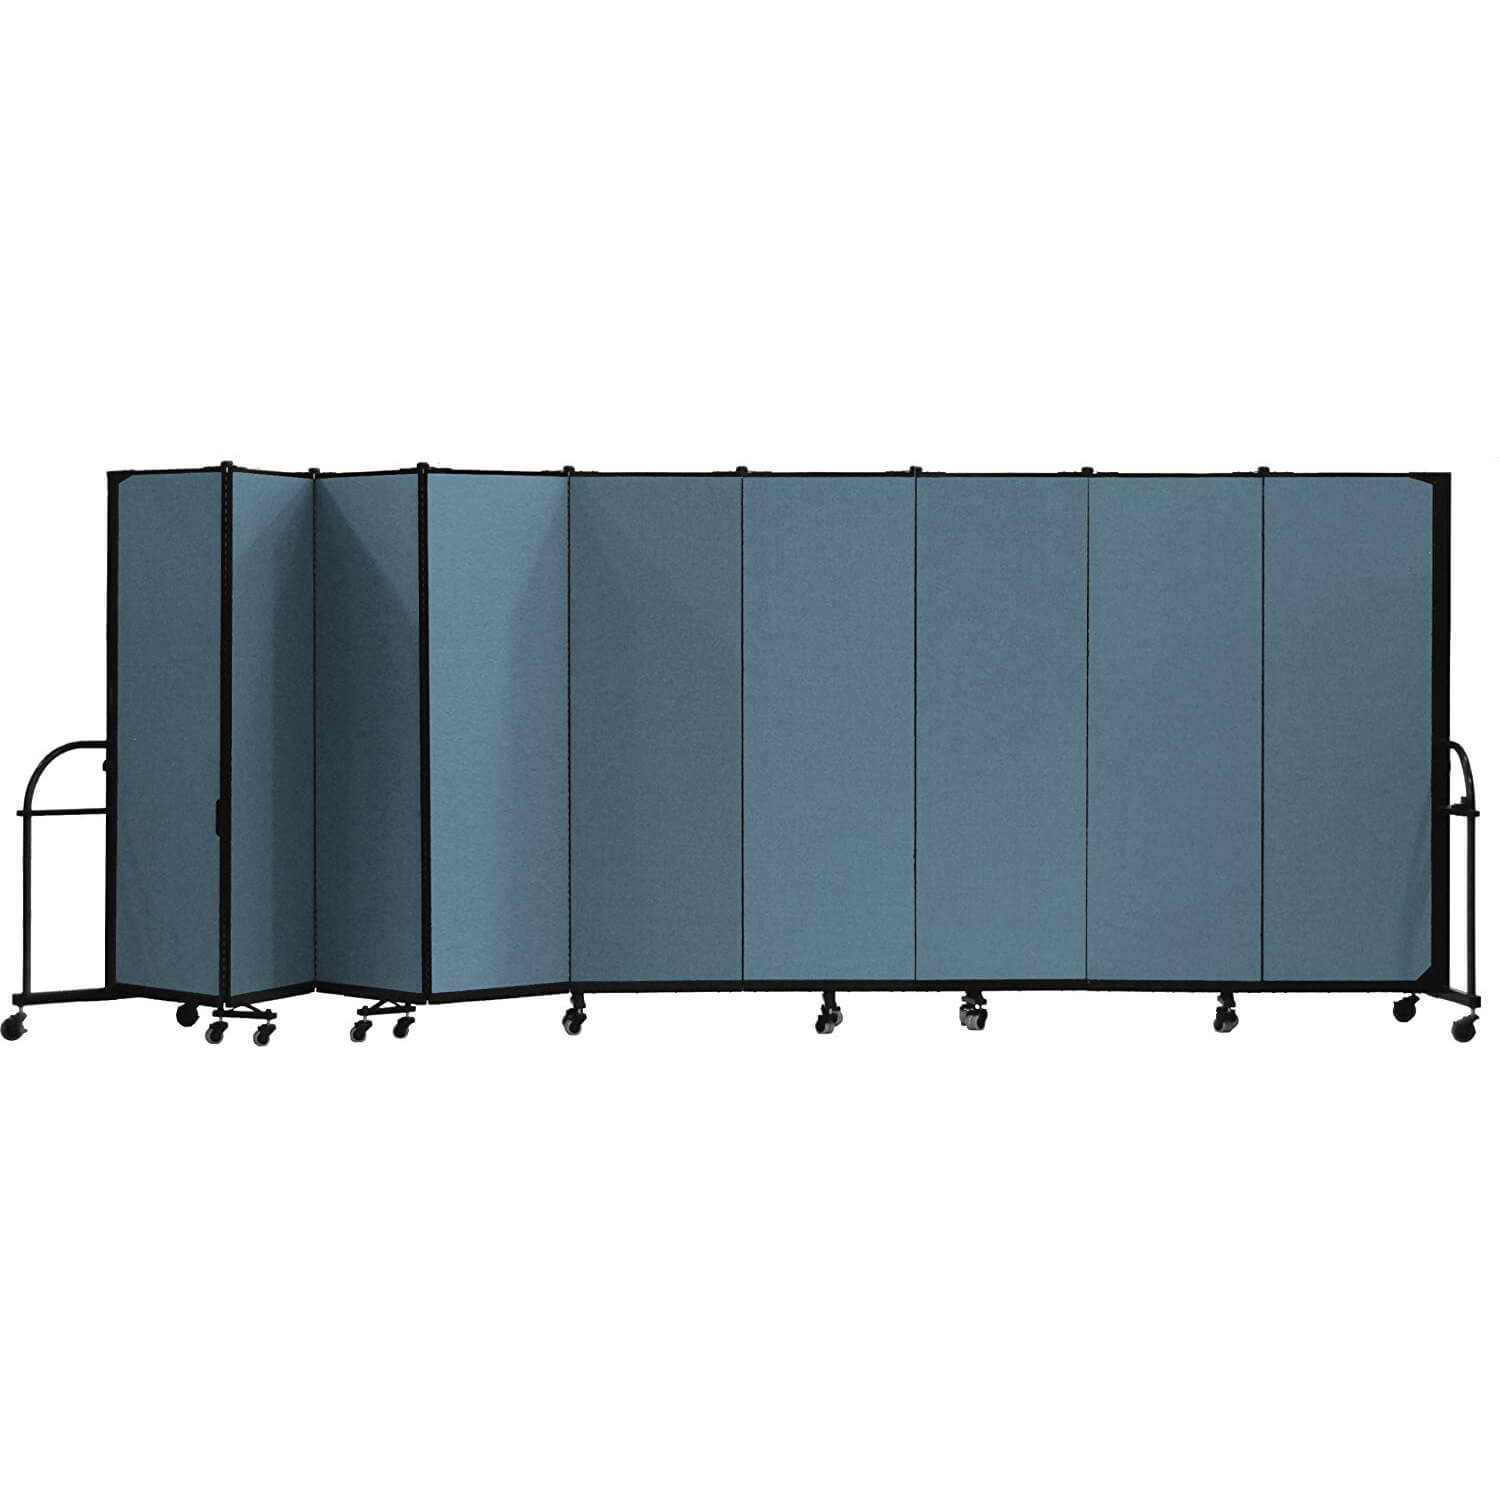 Panel room dividers CUB QSCFSL609D B RCS